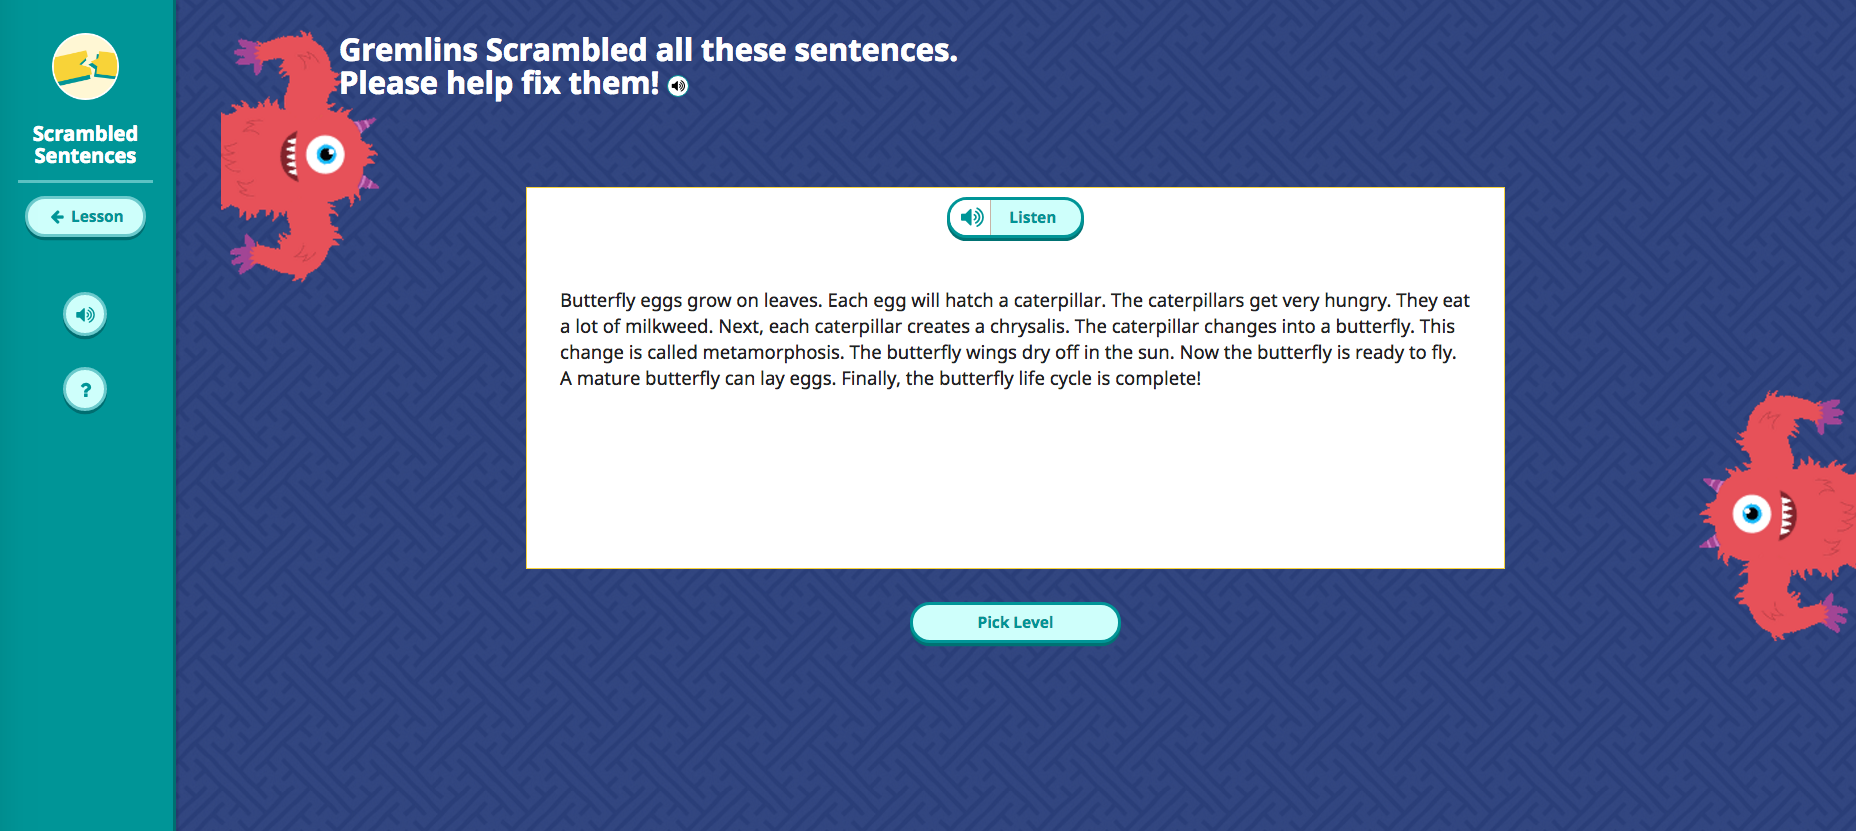 Scrambled Sentences Game Start